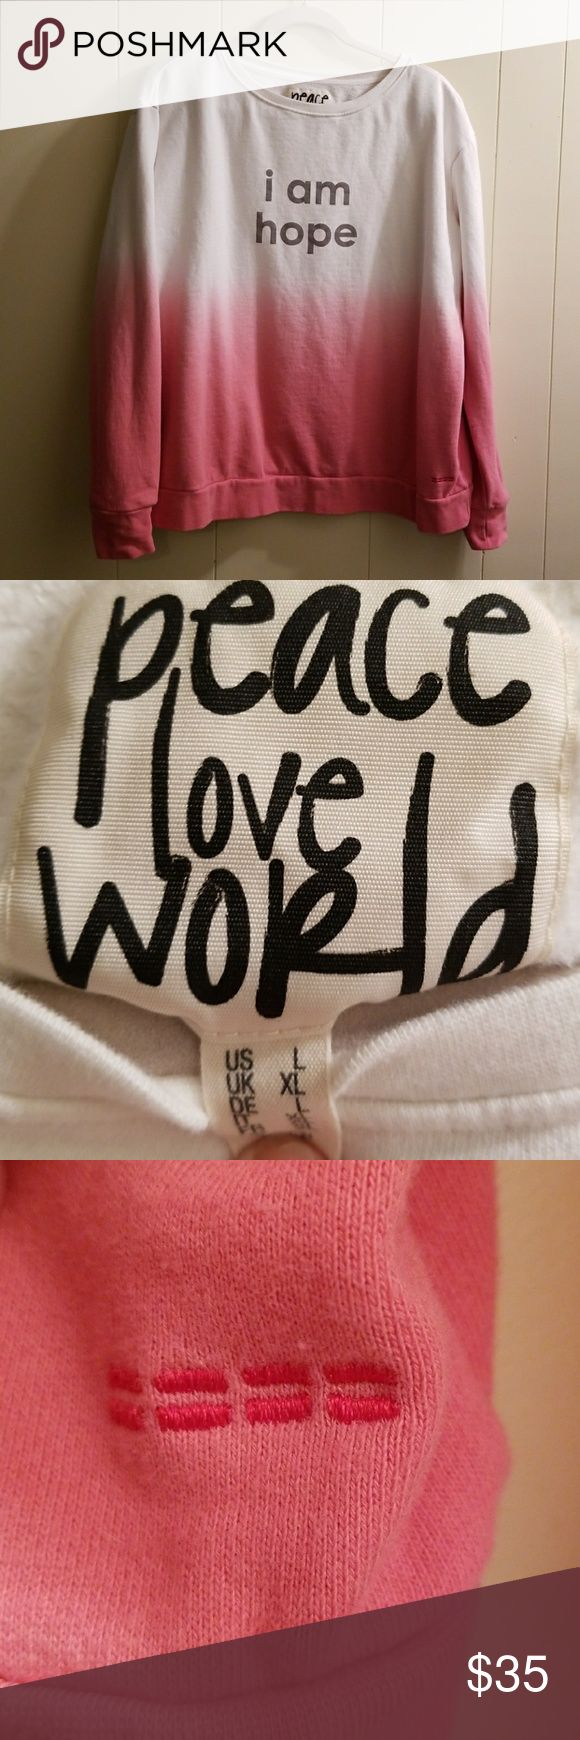 Authentic new peace love world sweatshirt Size XL.. never worn soft and warm starts out white changes to pink Peace Love World Sweaters